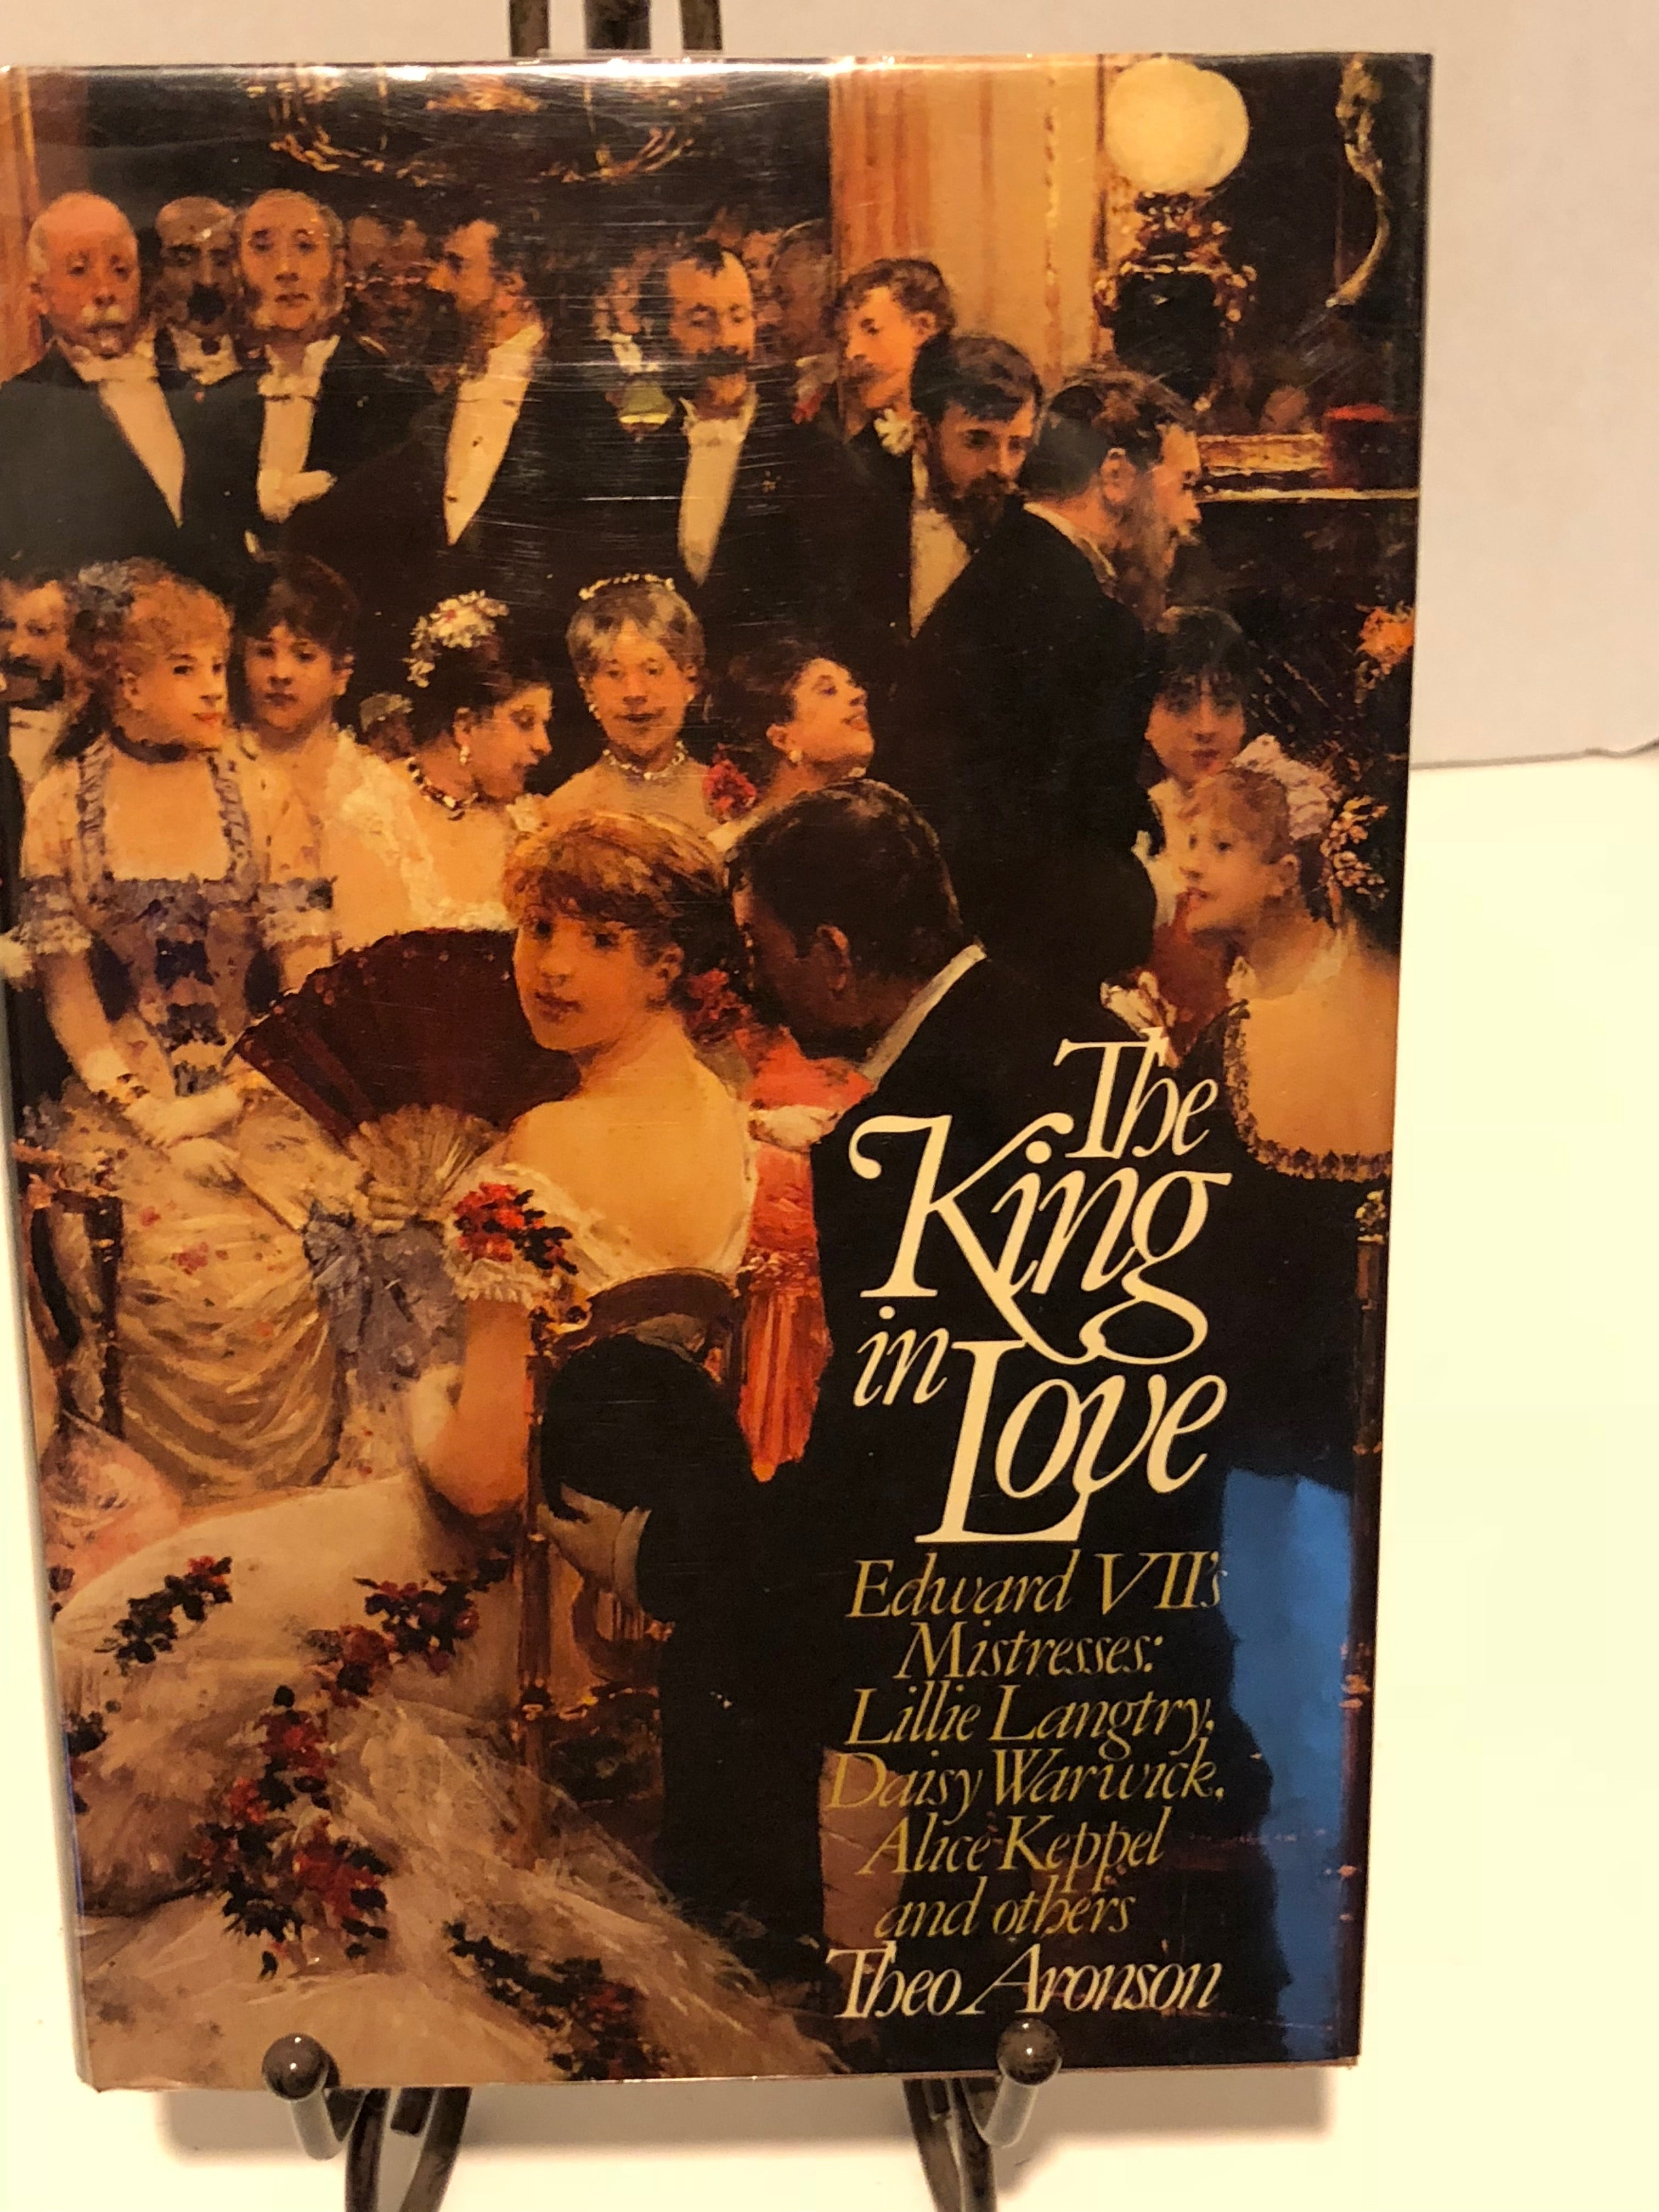 King in Love: Edwards Vll's Mistresses : Lillie Langtry, Daisy Warwick, Alice Keppel and Others, The